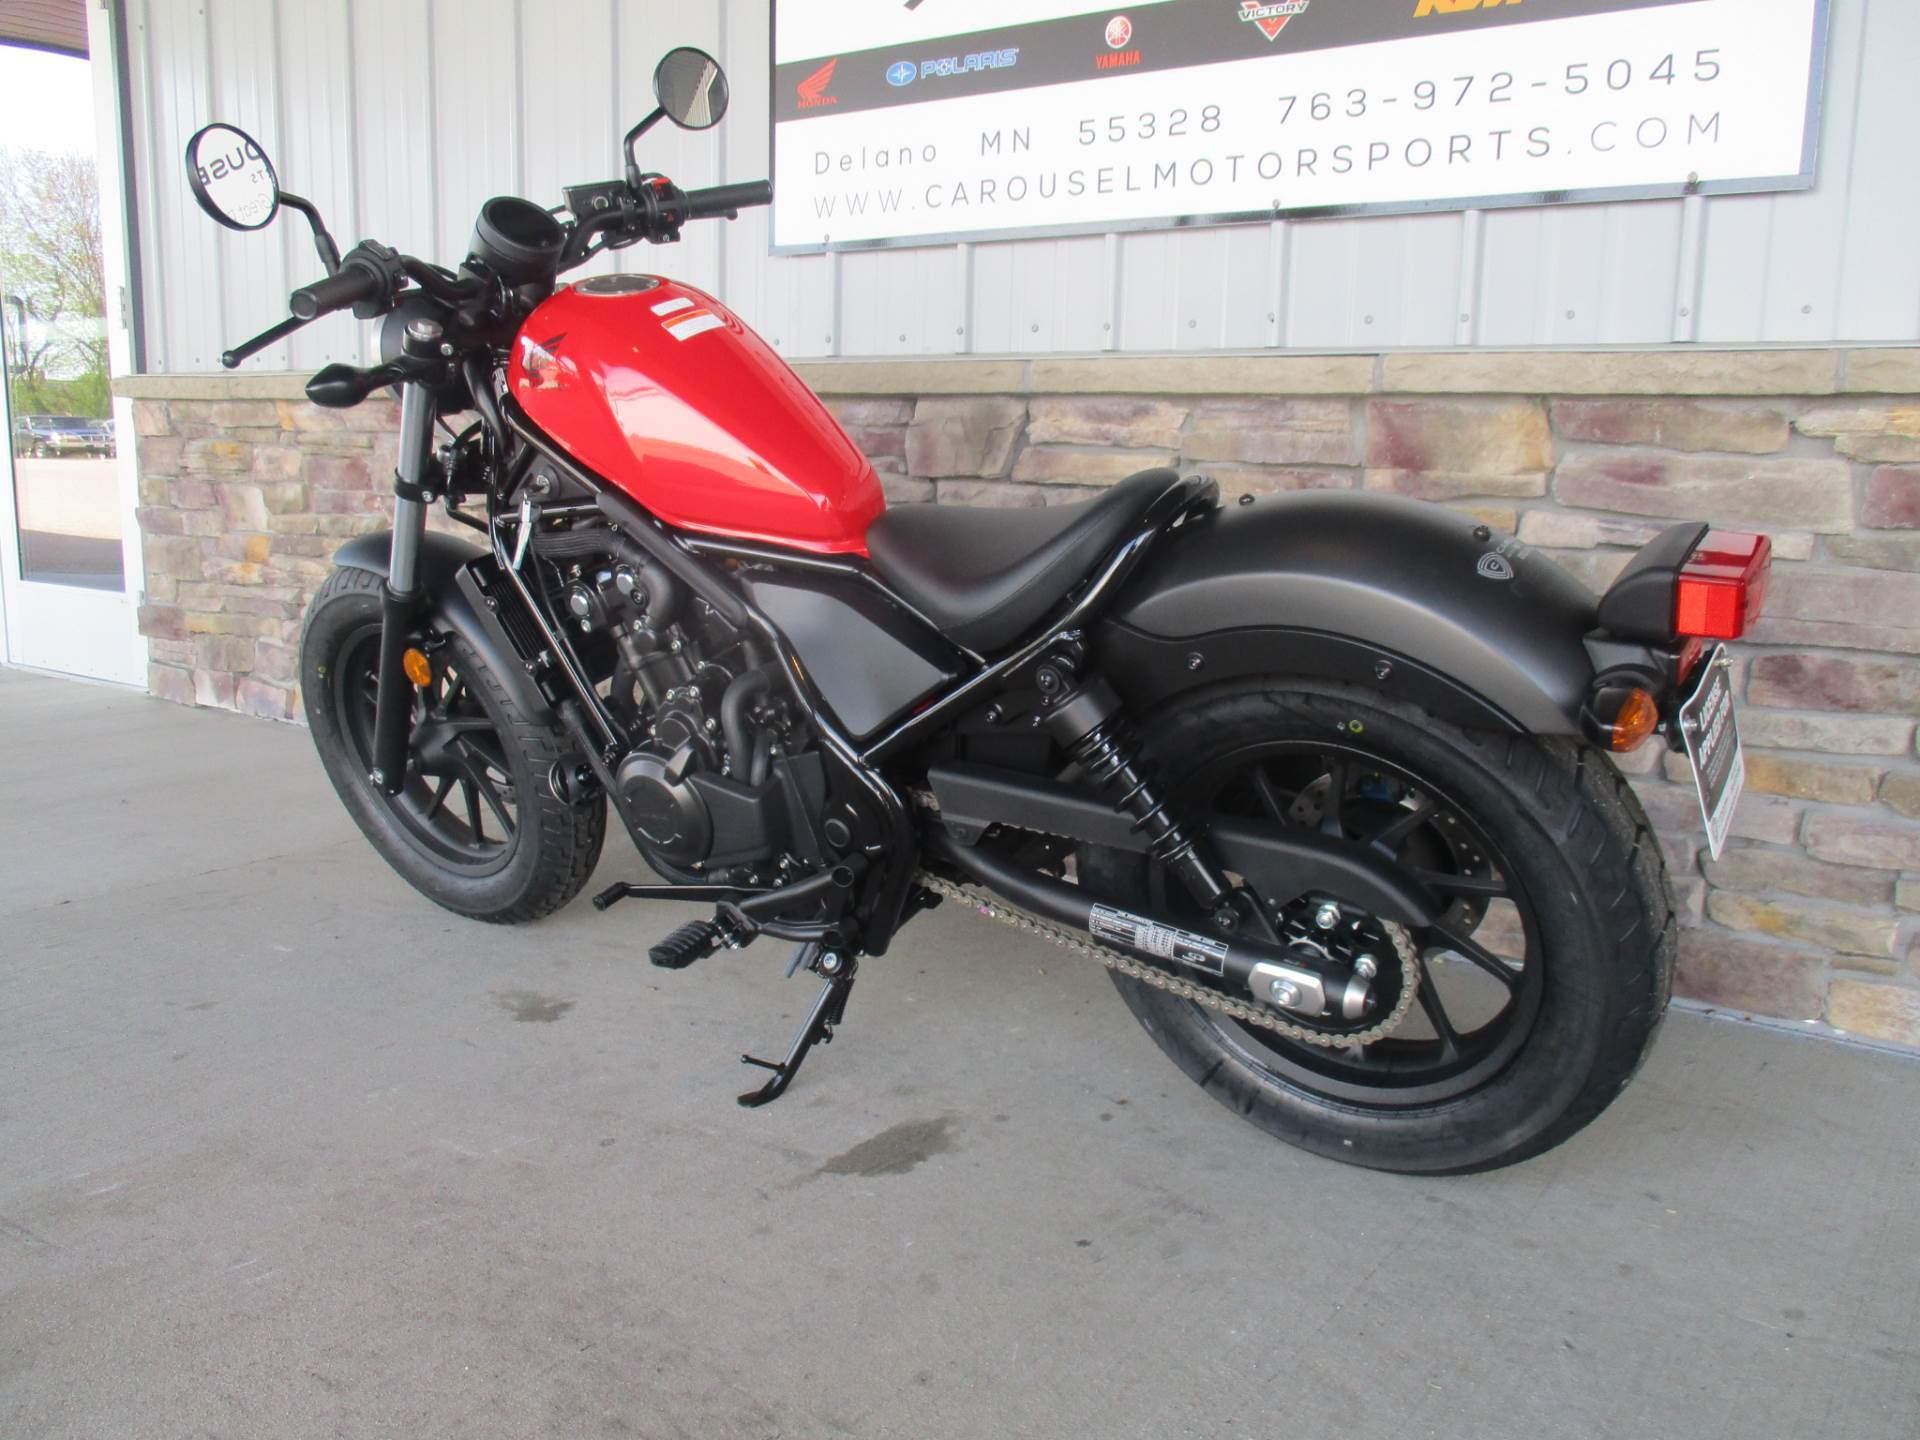 2017 Honda Rebel 500 in Delano, Minnesota